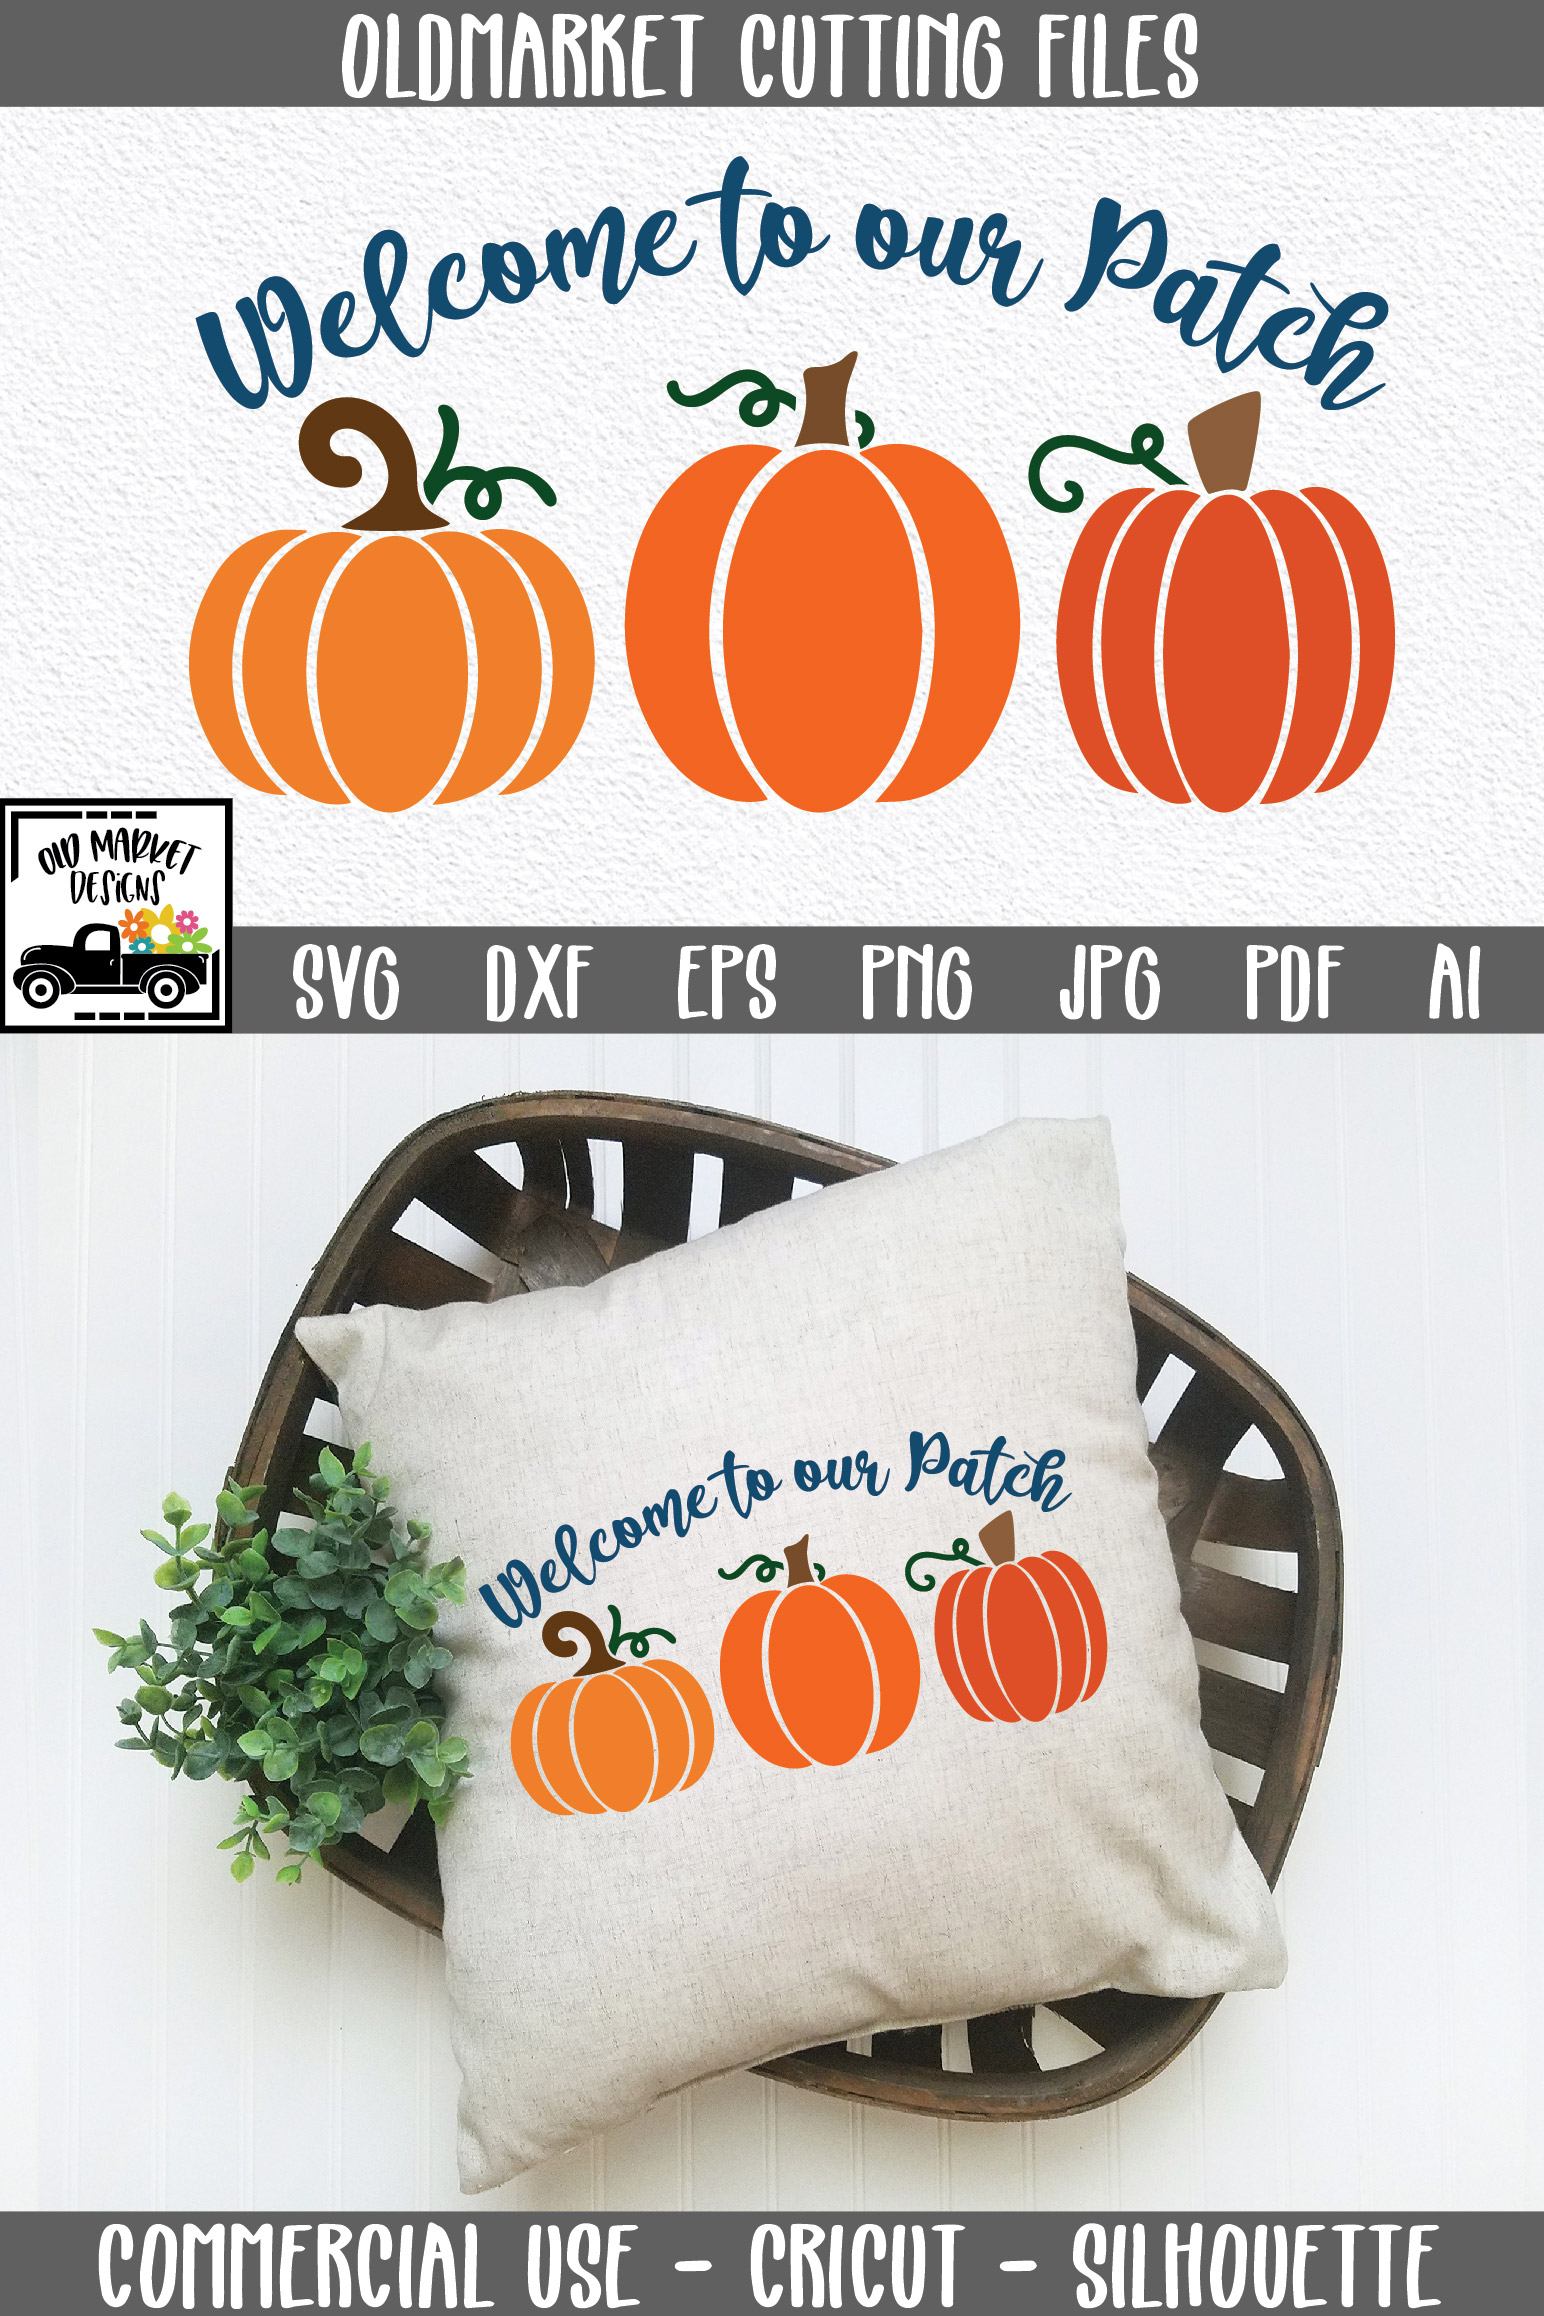 Welcome to our Patch SVG Cut File - Fall Pumpkin SVG example image 6